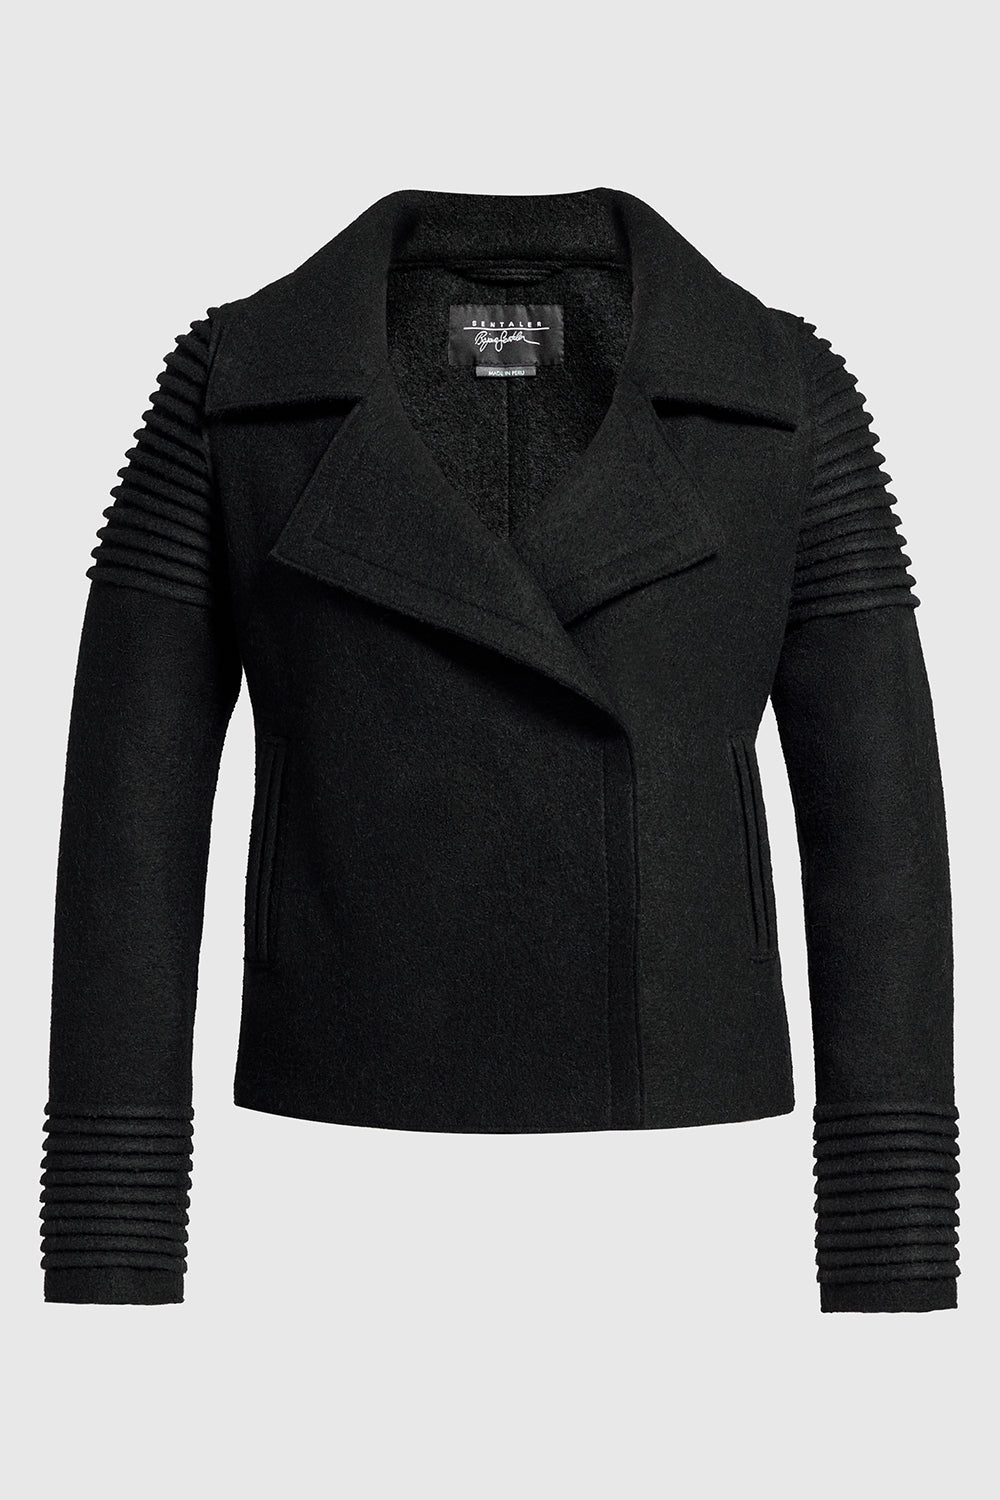 Sentaler Bomber Jacket with Ribbed Shoulders and Cuffs featured in Superfine Alpaca and available in Black. Seen off model.